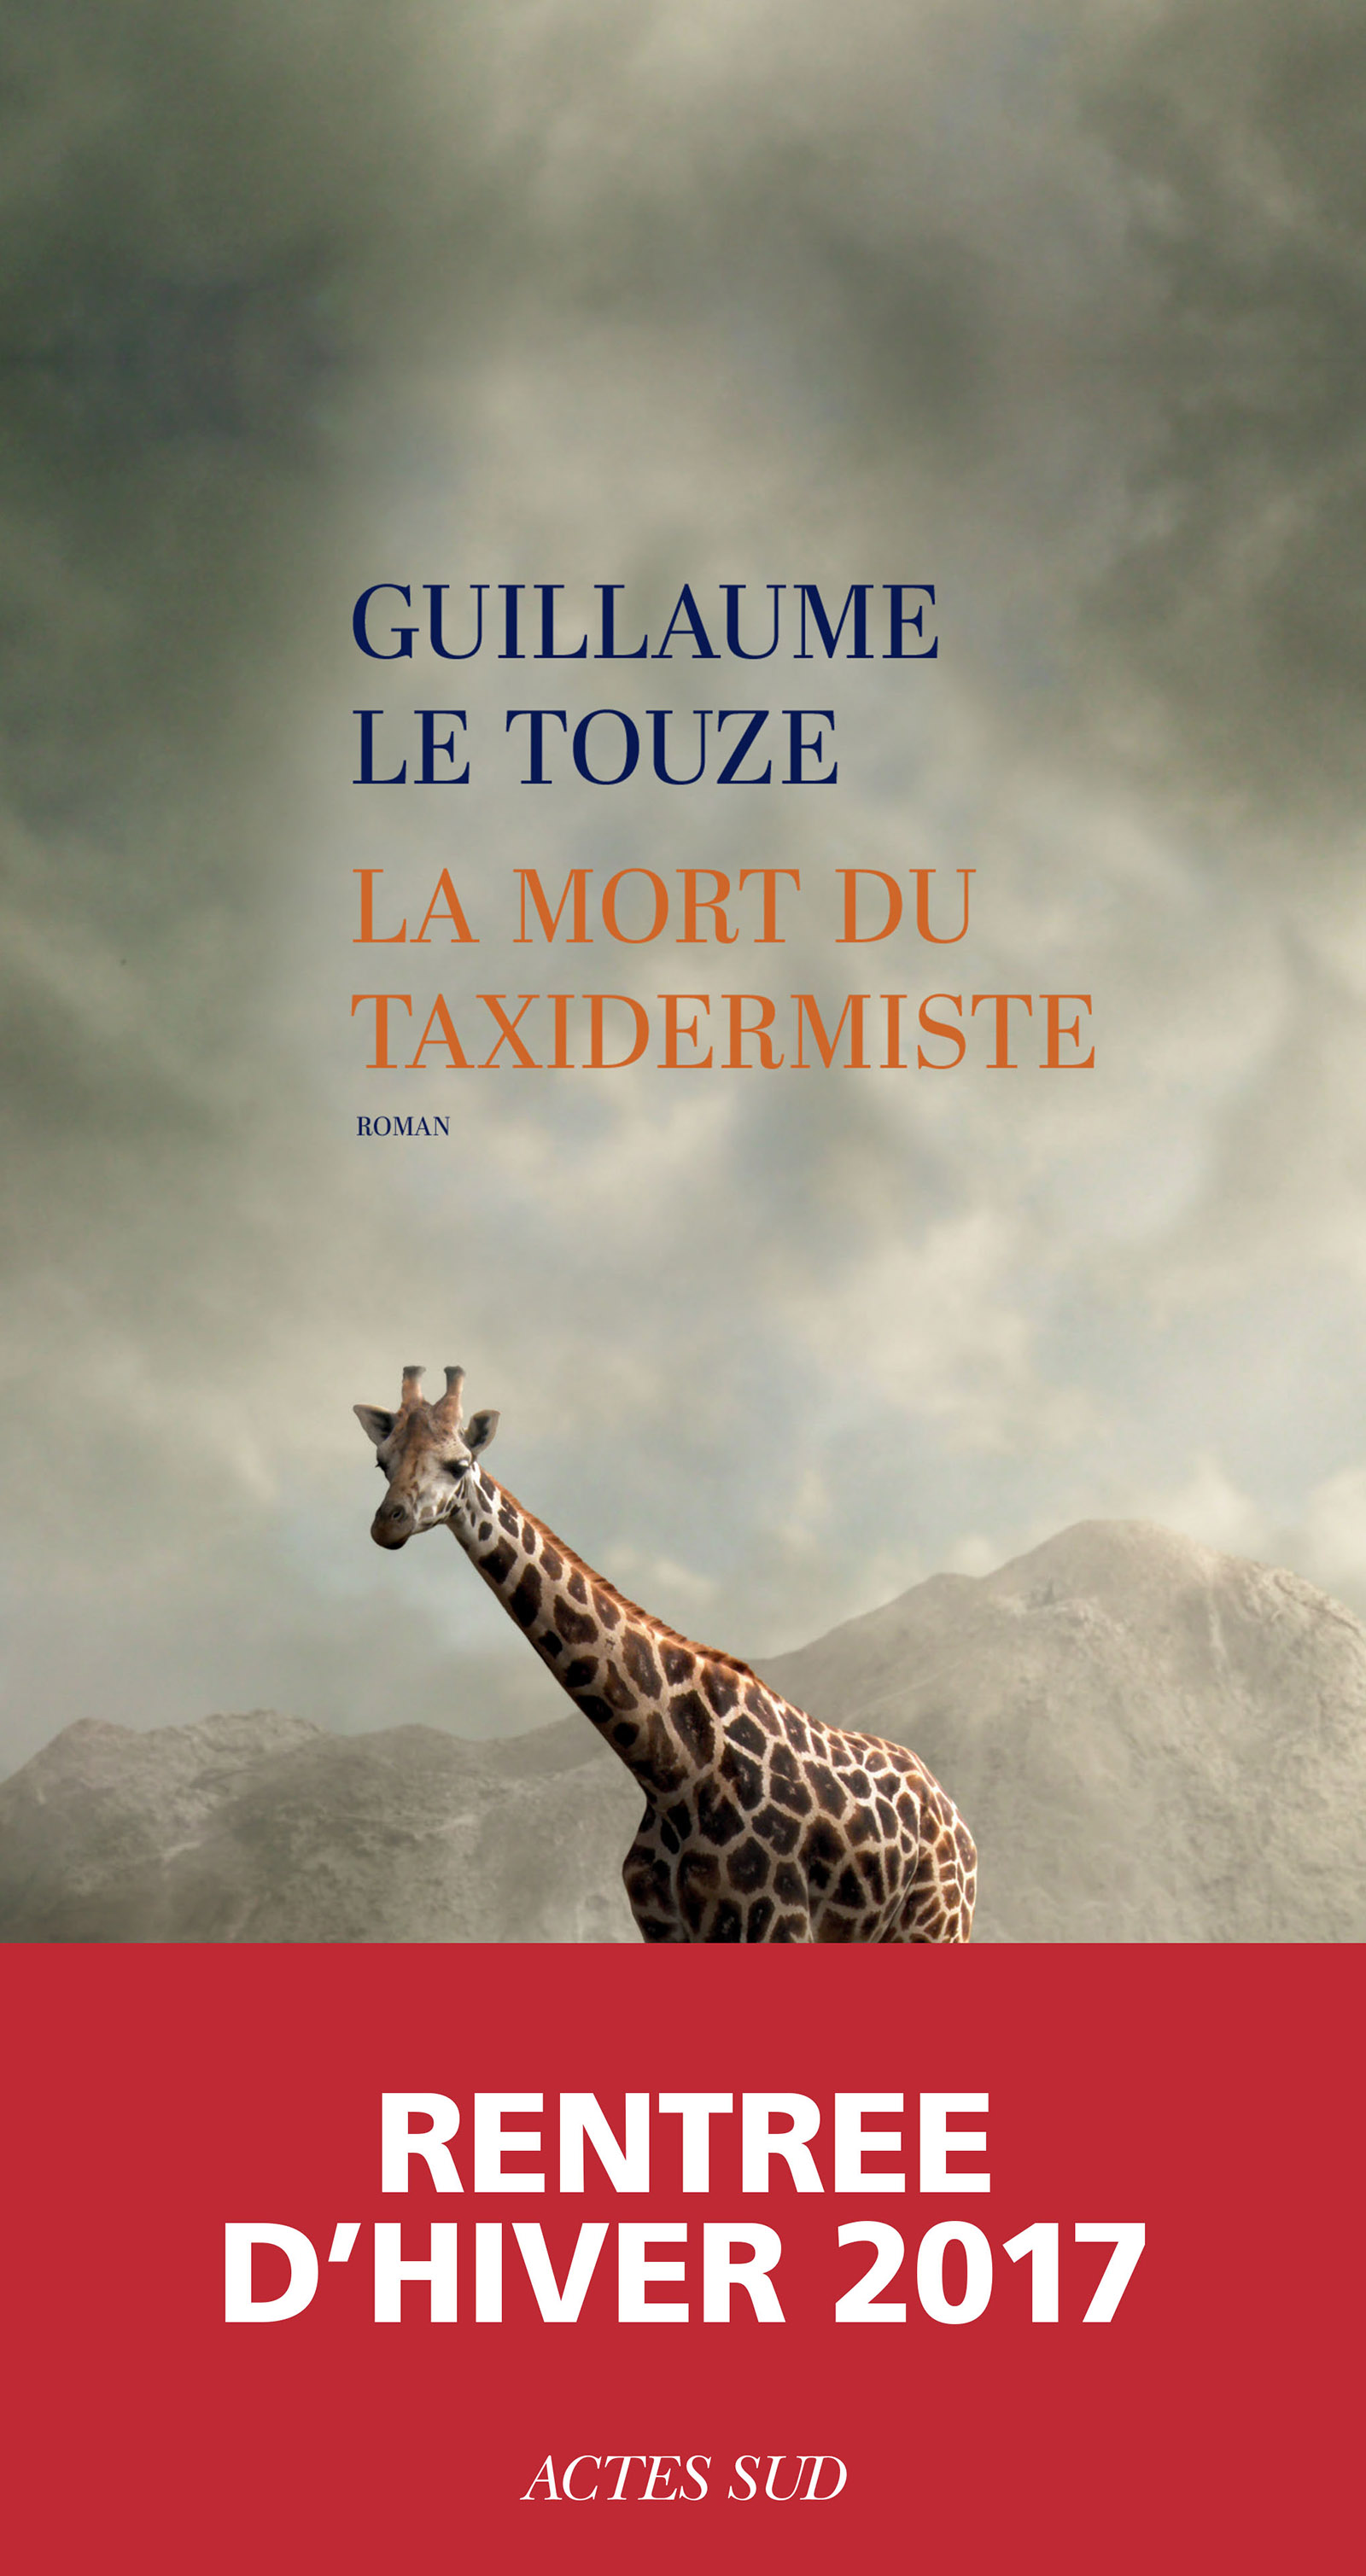 La Mort du taxidermiste